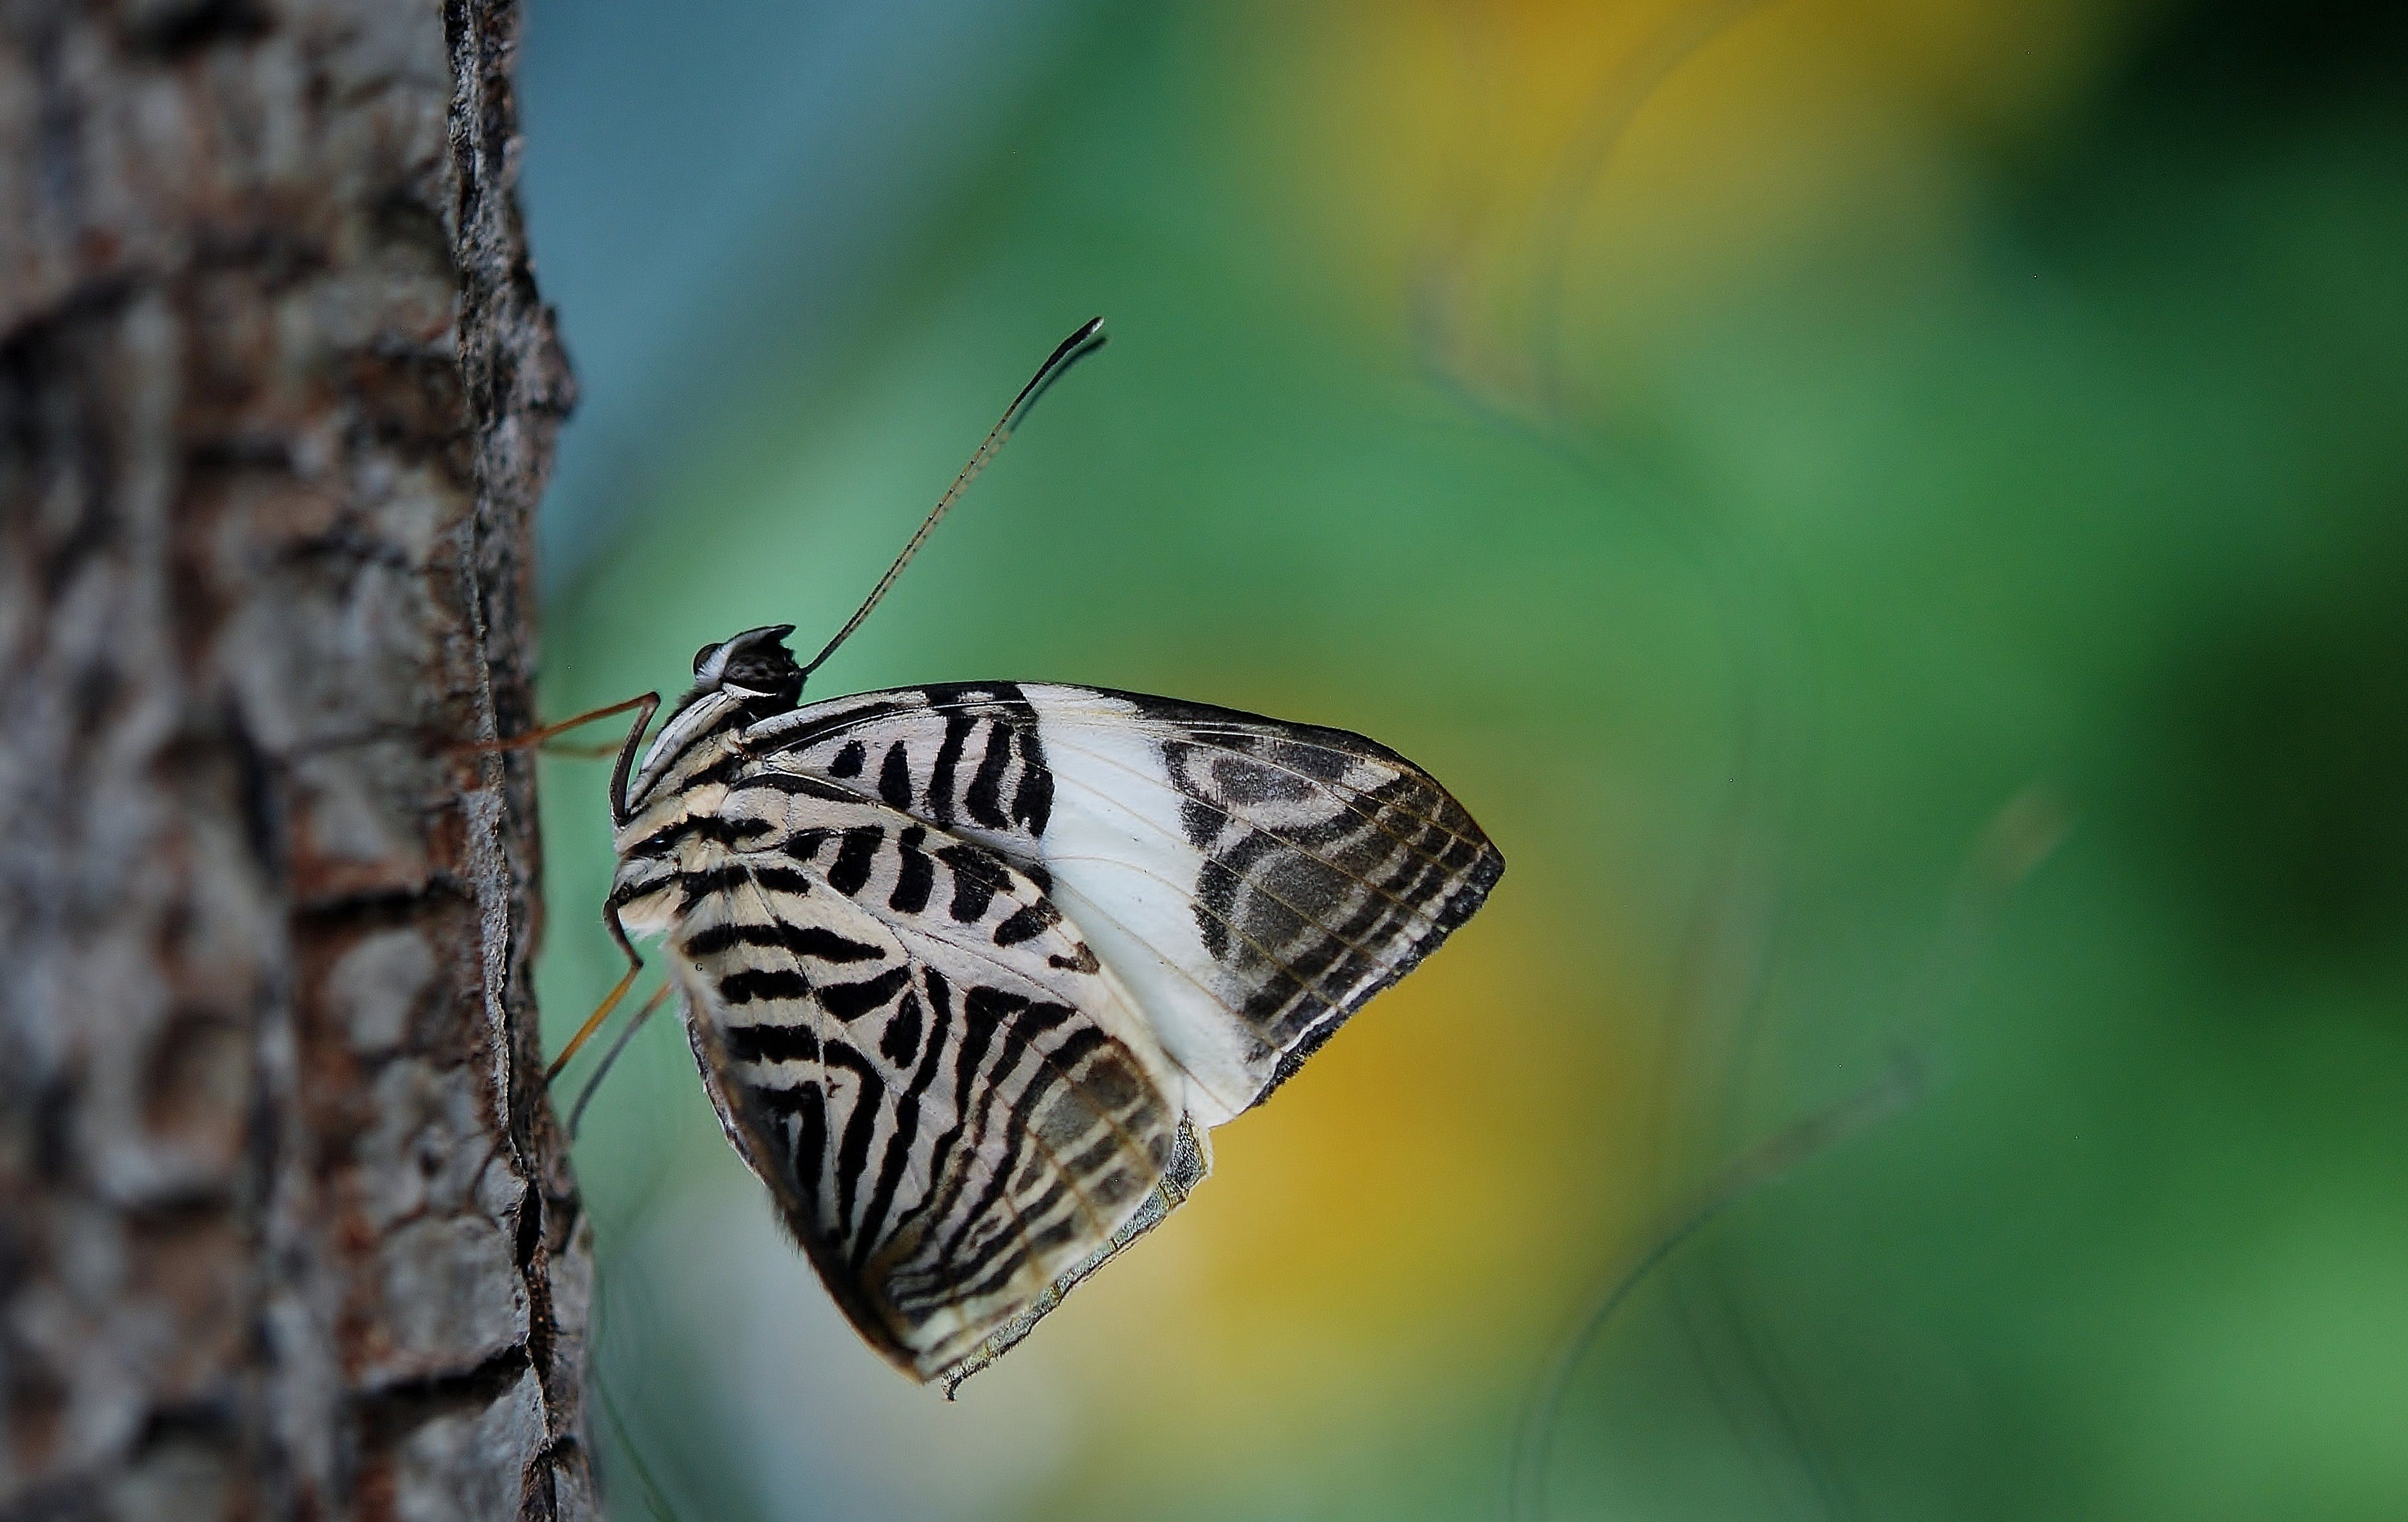 Selective Focus Photography White and Black Moth on Tree Bark